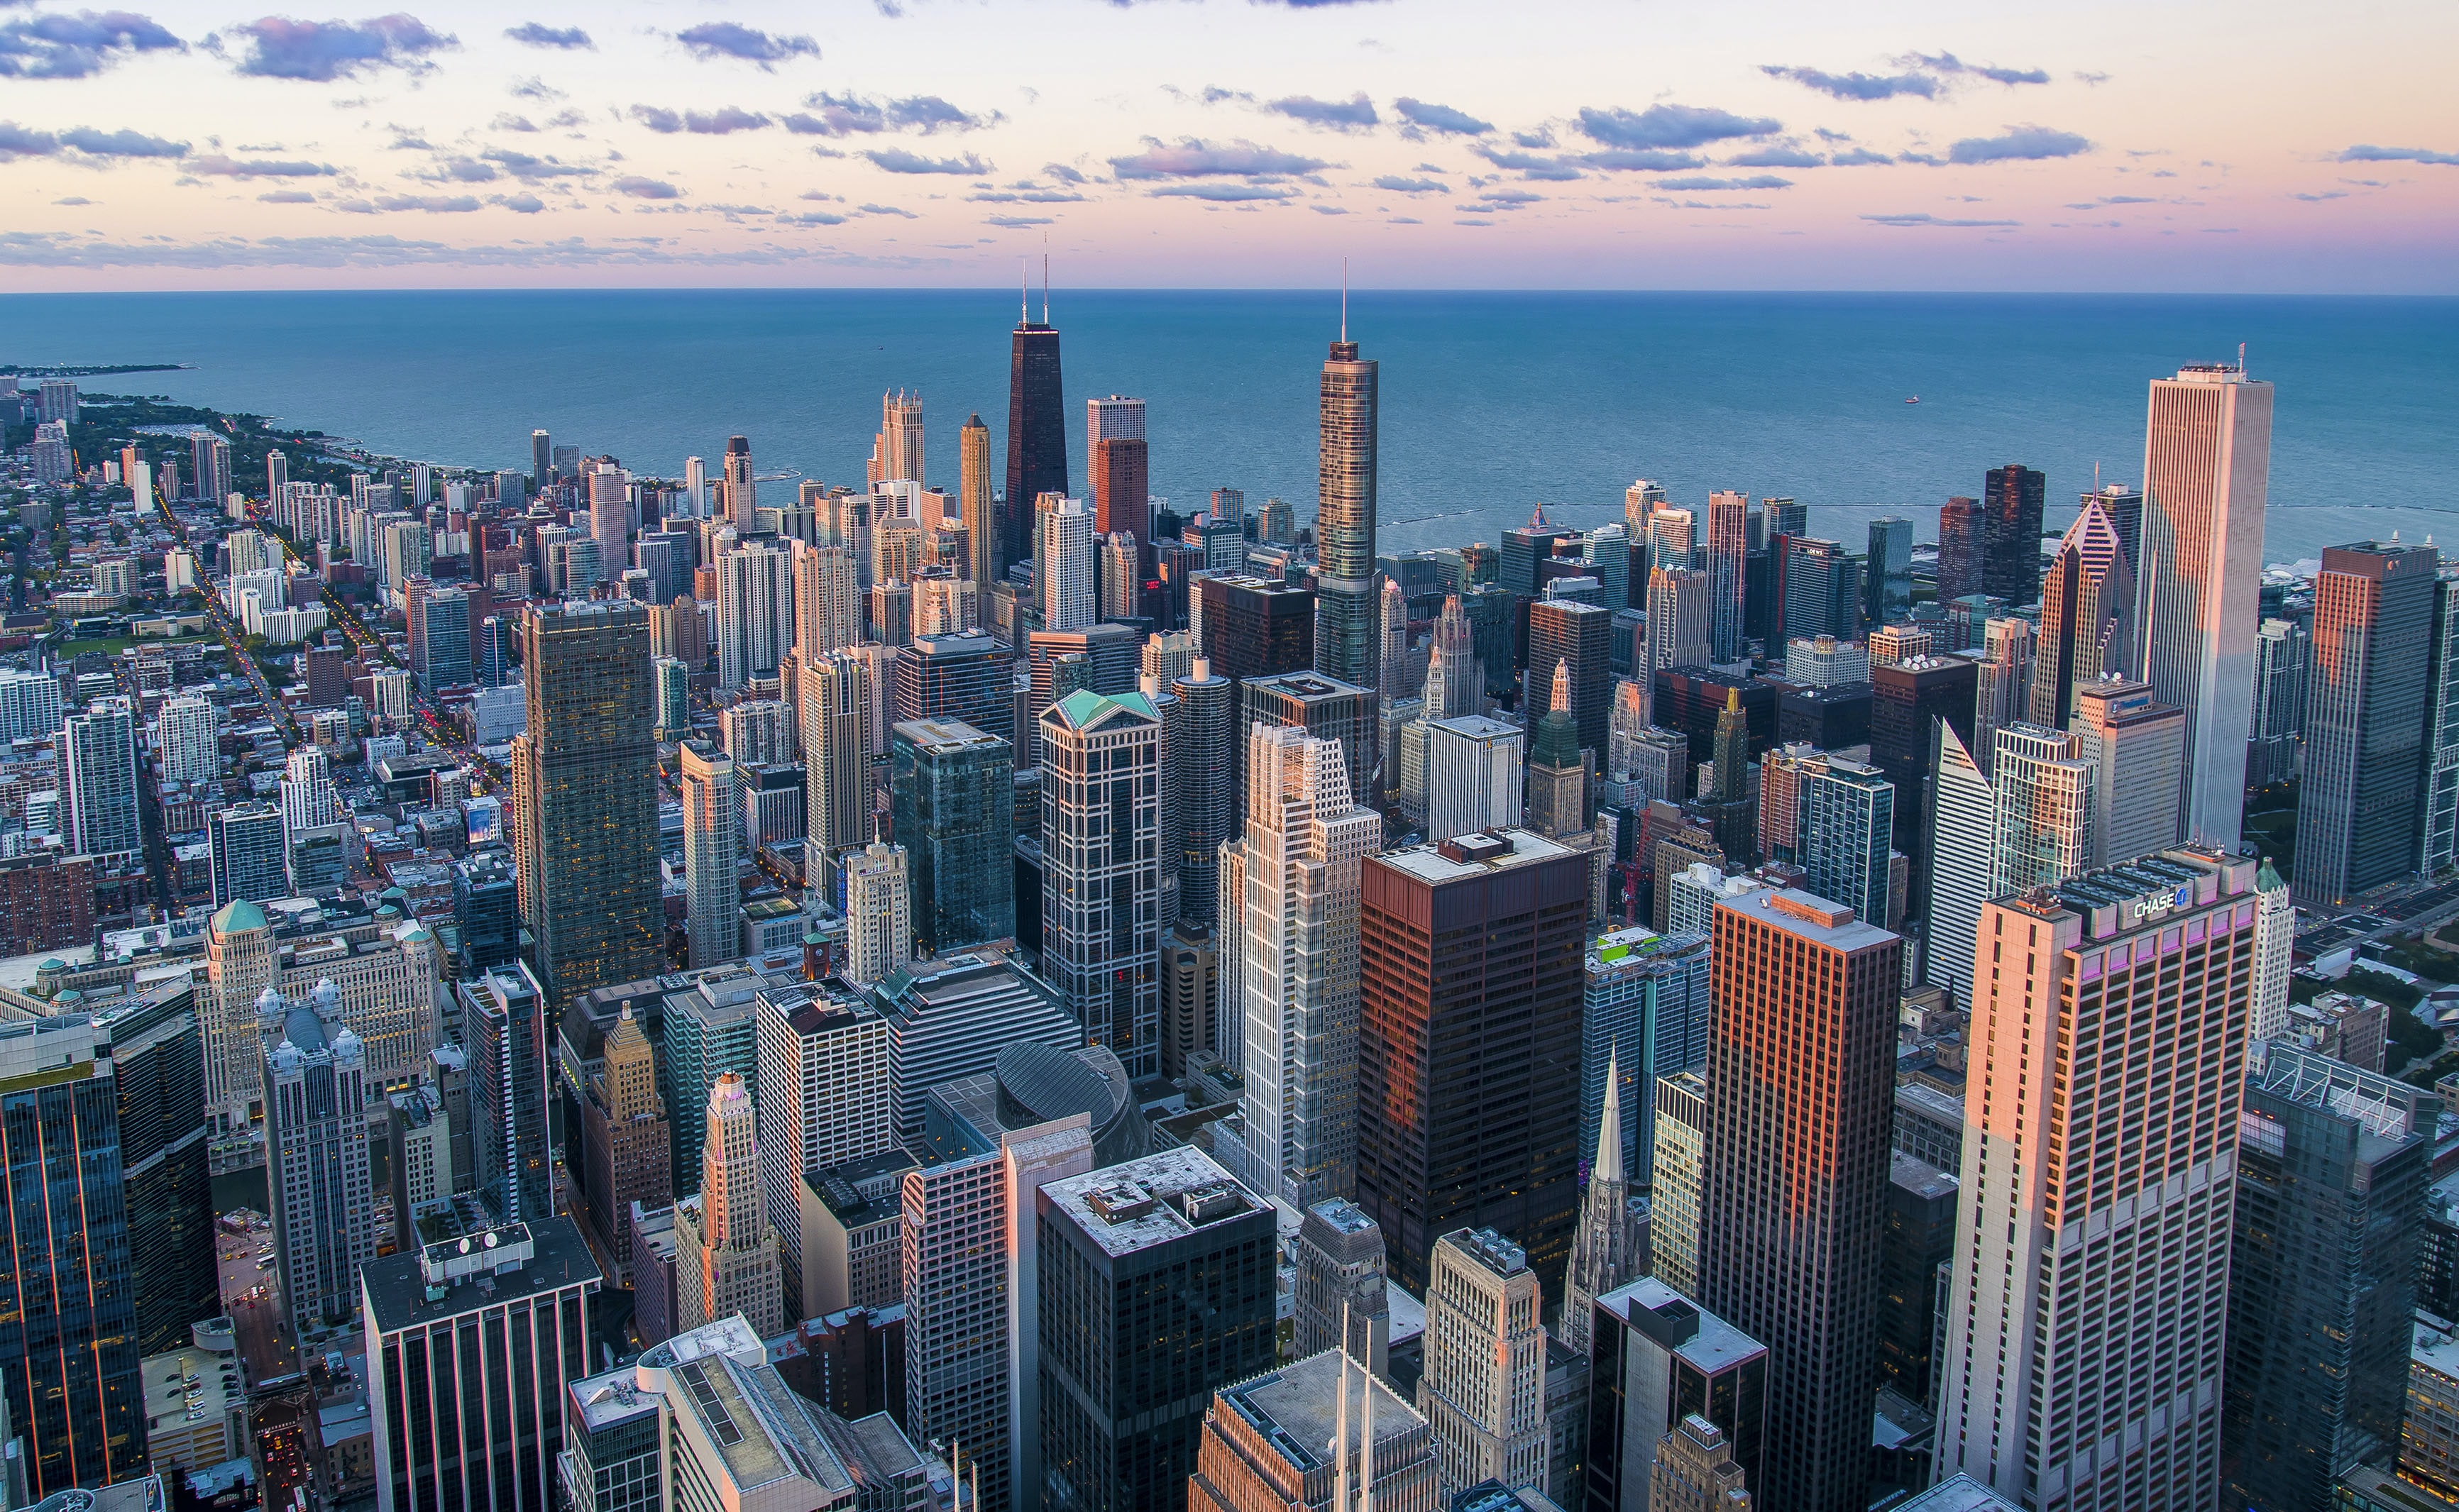 View on skyscrapers and Lake Michigan in Chicago